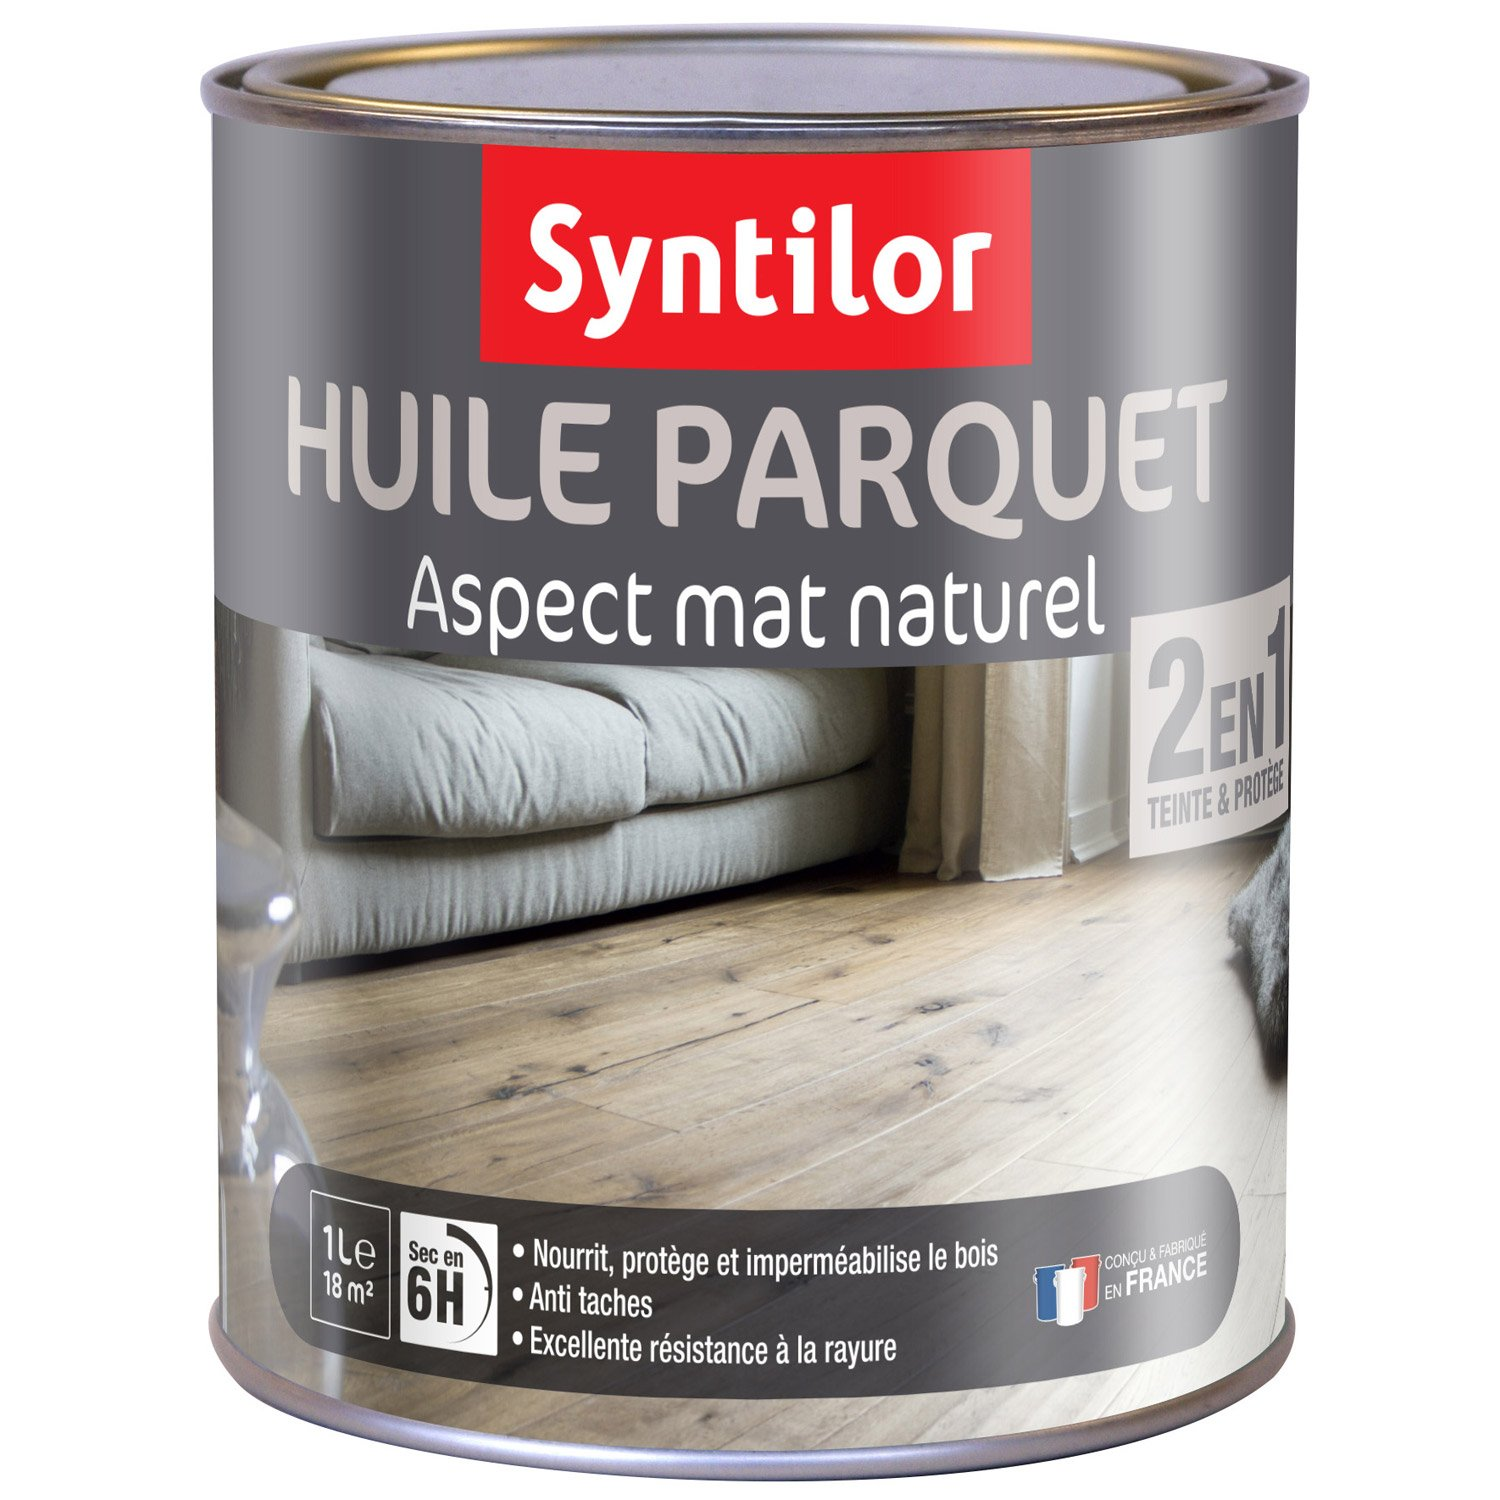 huile parquet 2 en 1 syntilor 1 l naturelle leroy merlin. Black Bedroom Furniture Sets. Home Design Ideas